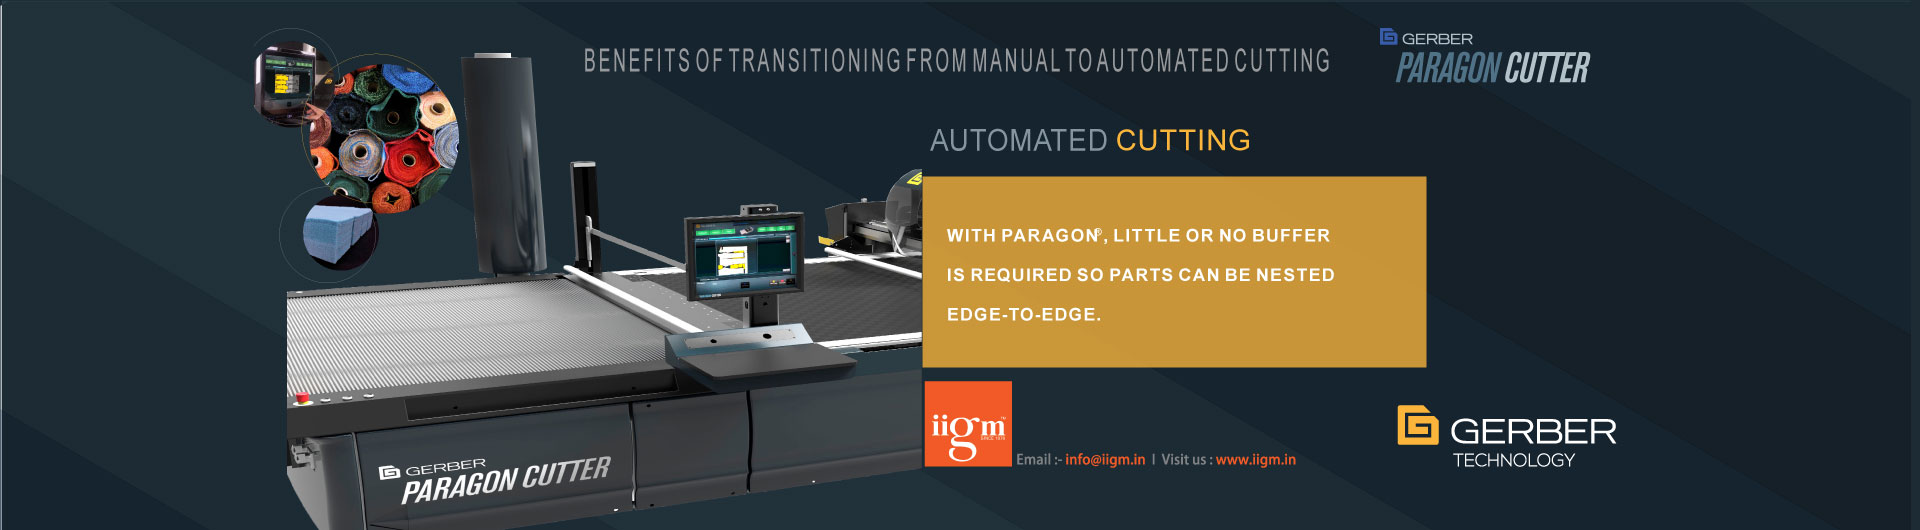 Gerber-Automated-Cutting